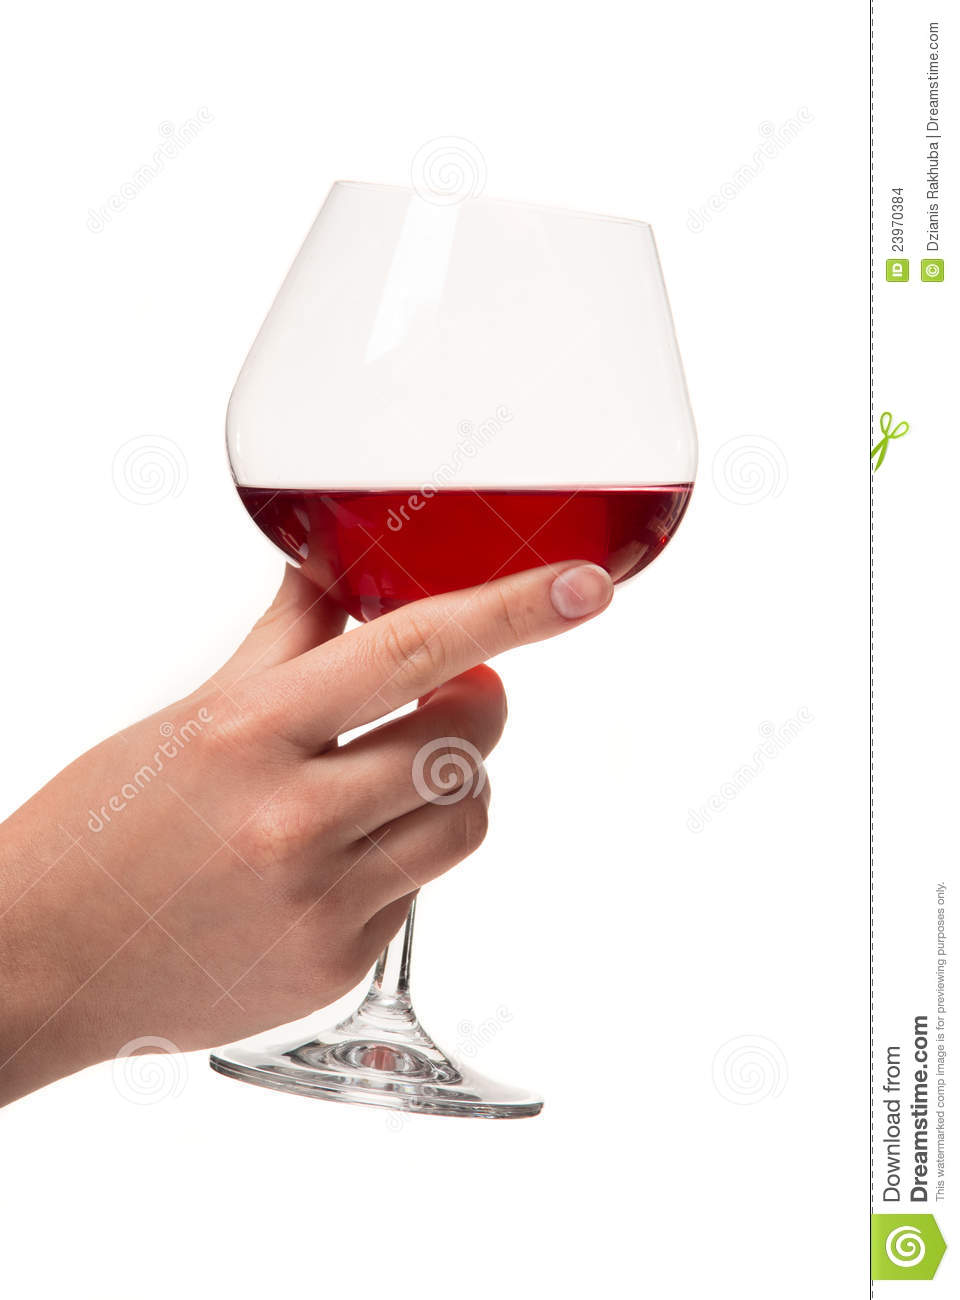 Human Hand With A Glass Of Wine  White Background  Studio Shot